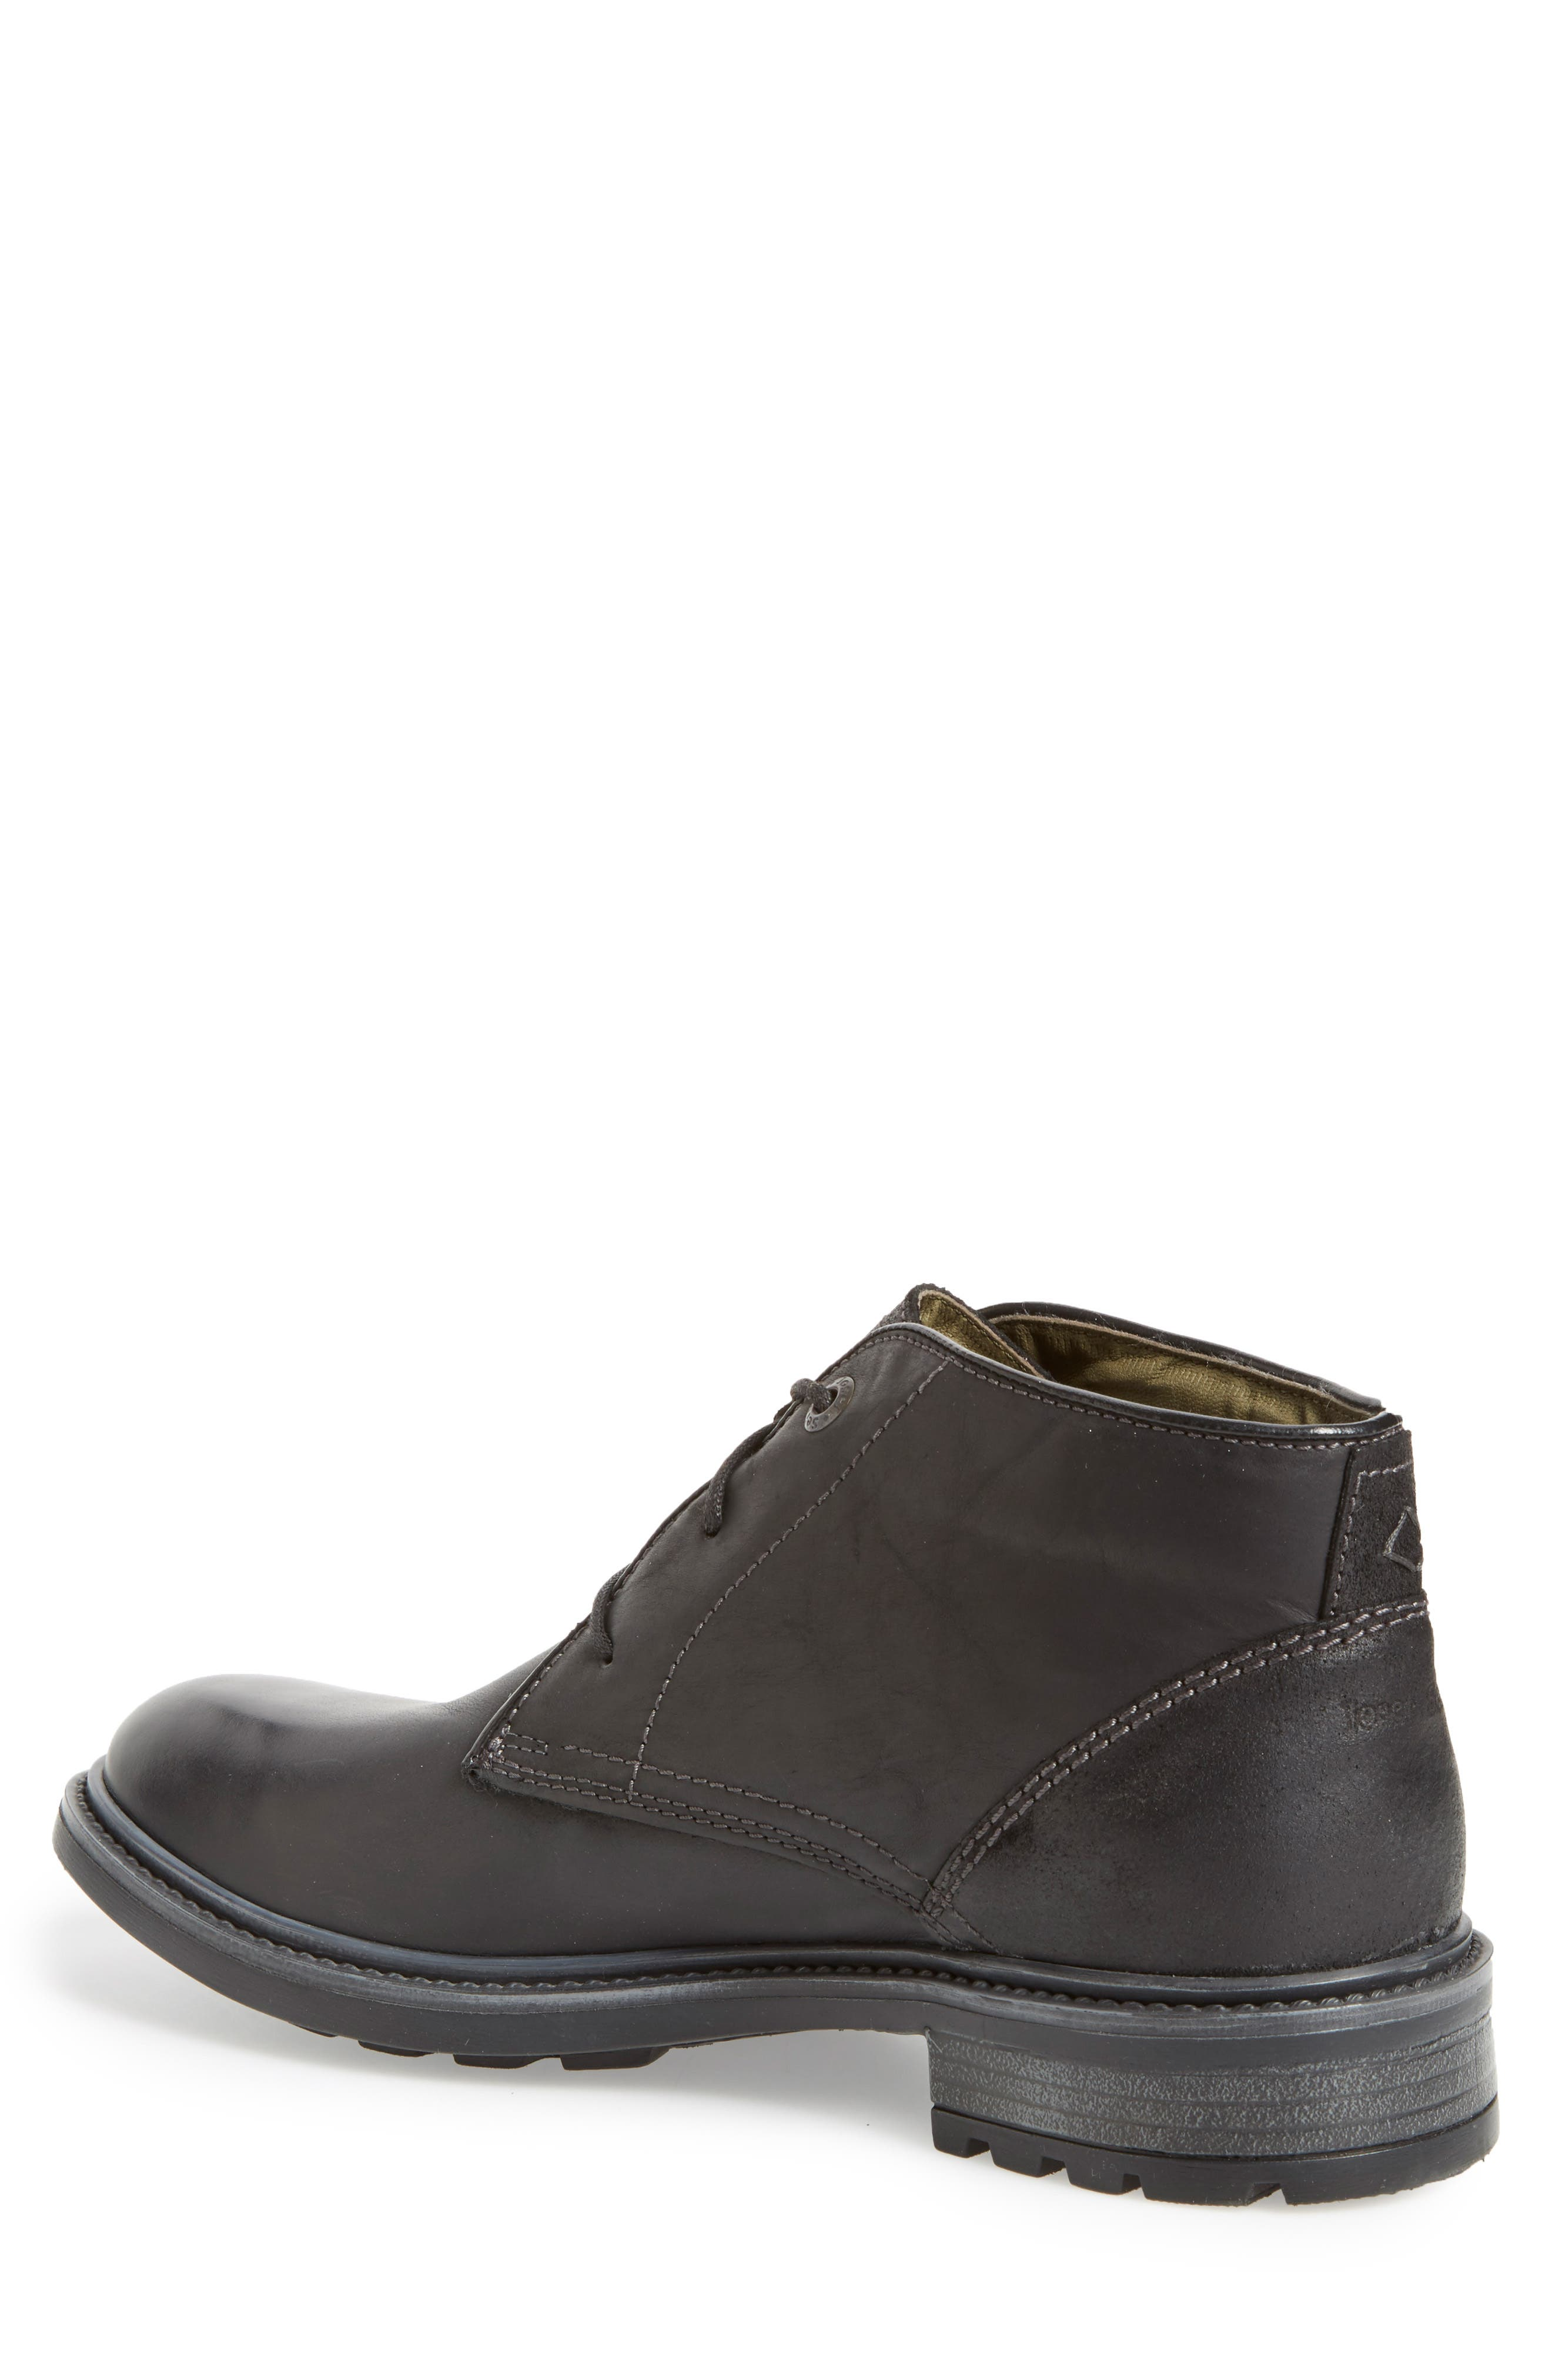 'Oscar 11' Chukka Boot,                             Alternate thumbnail 5, color,                             BLACK